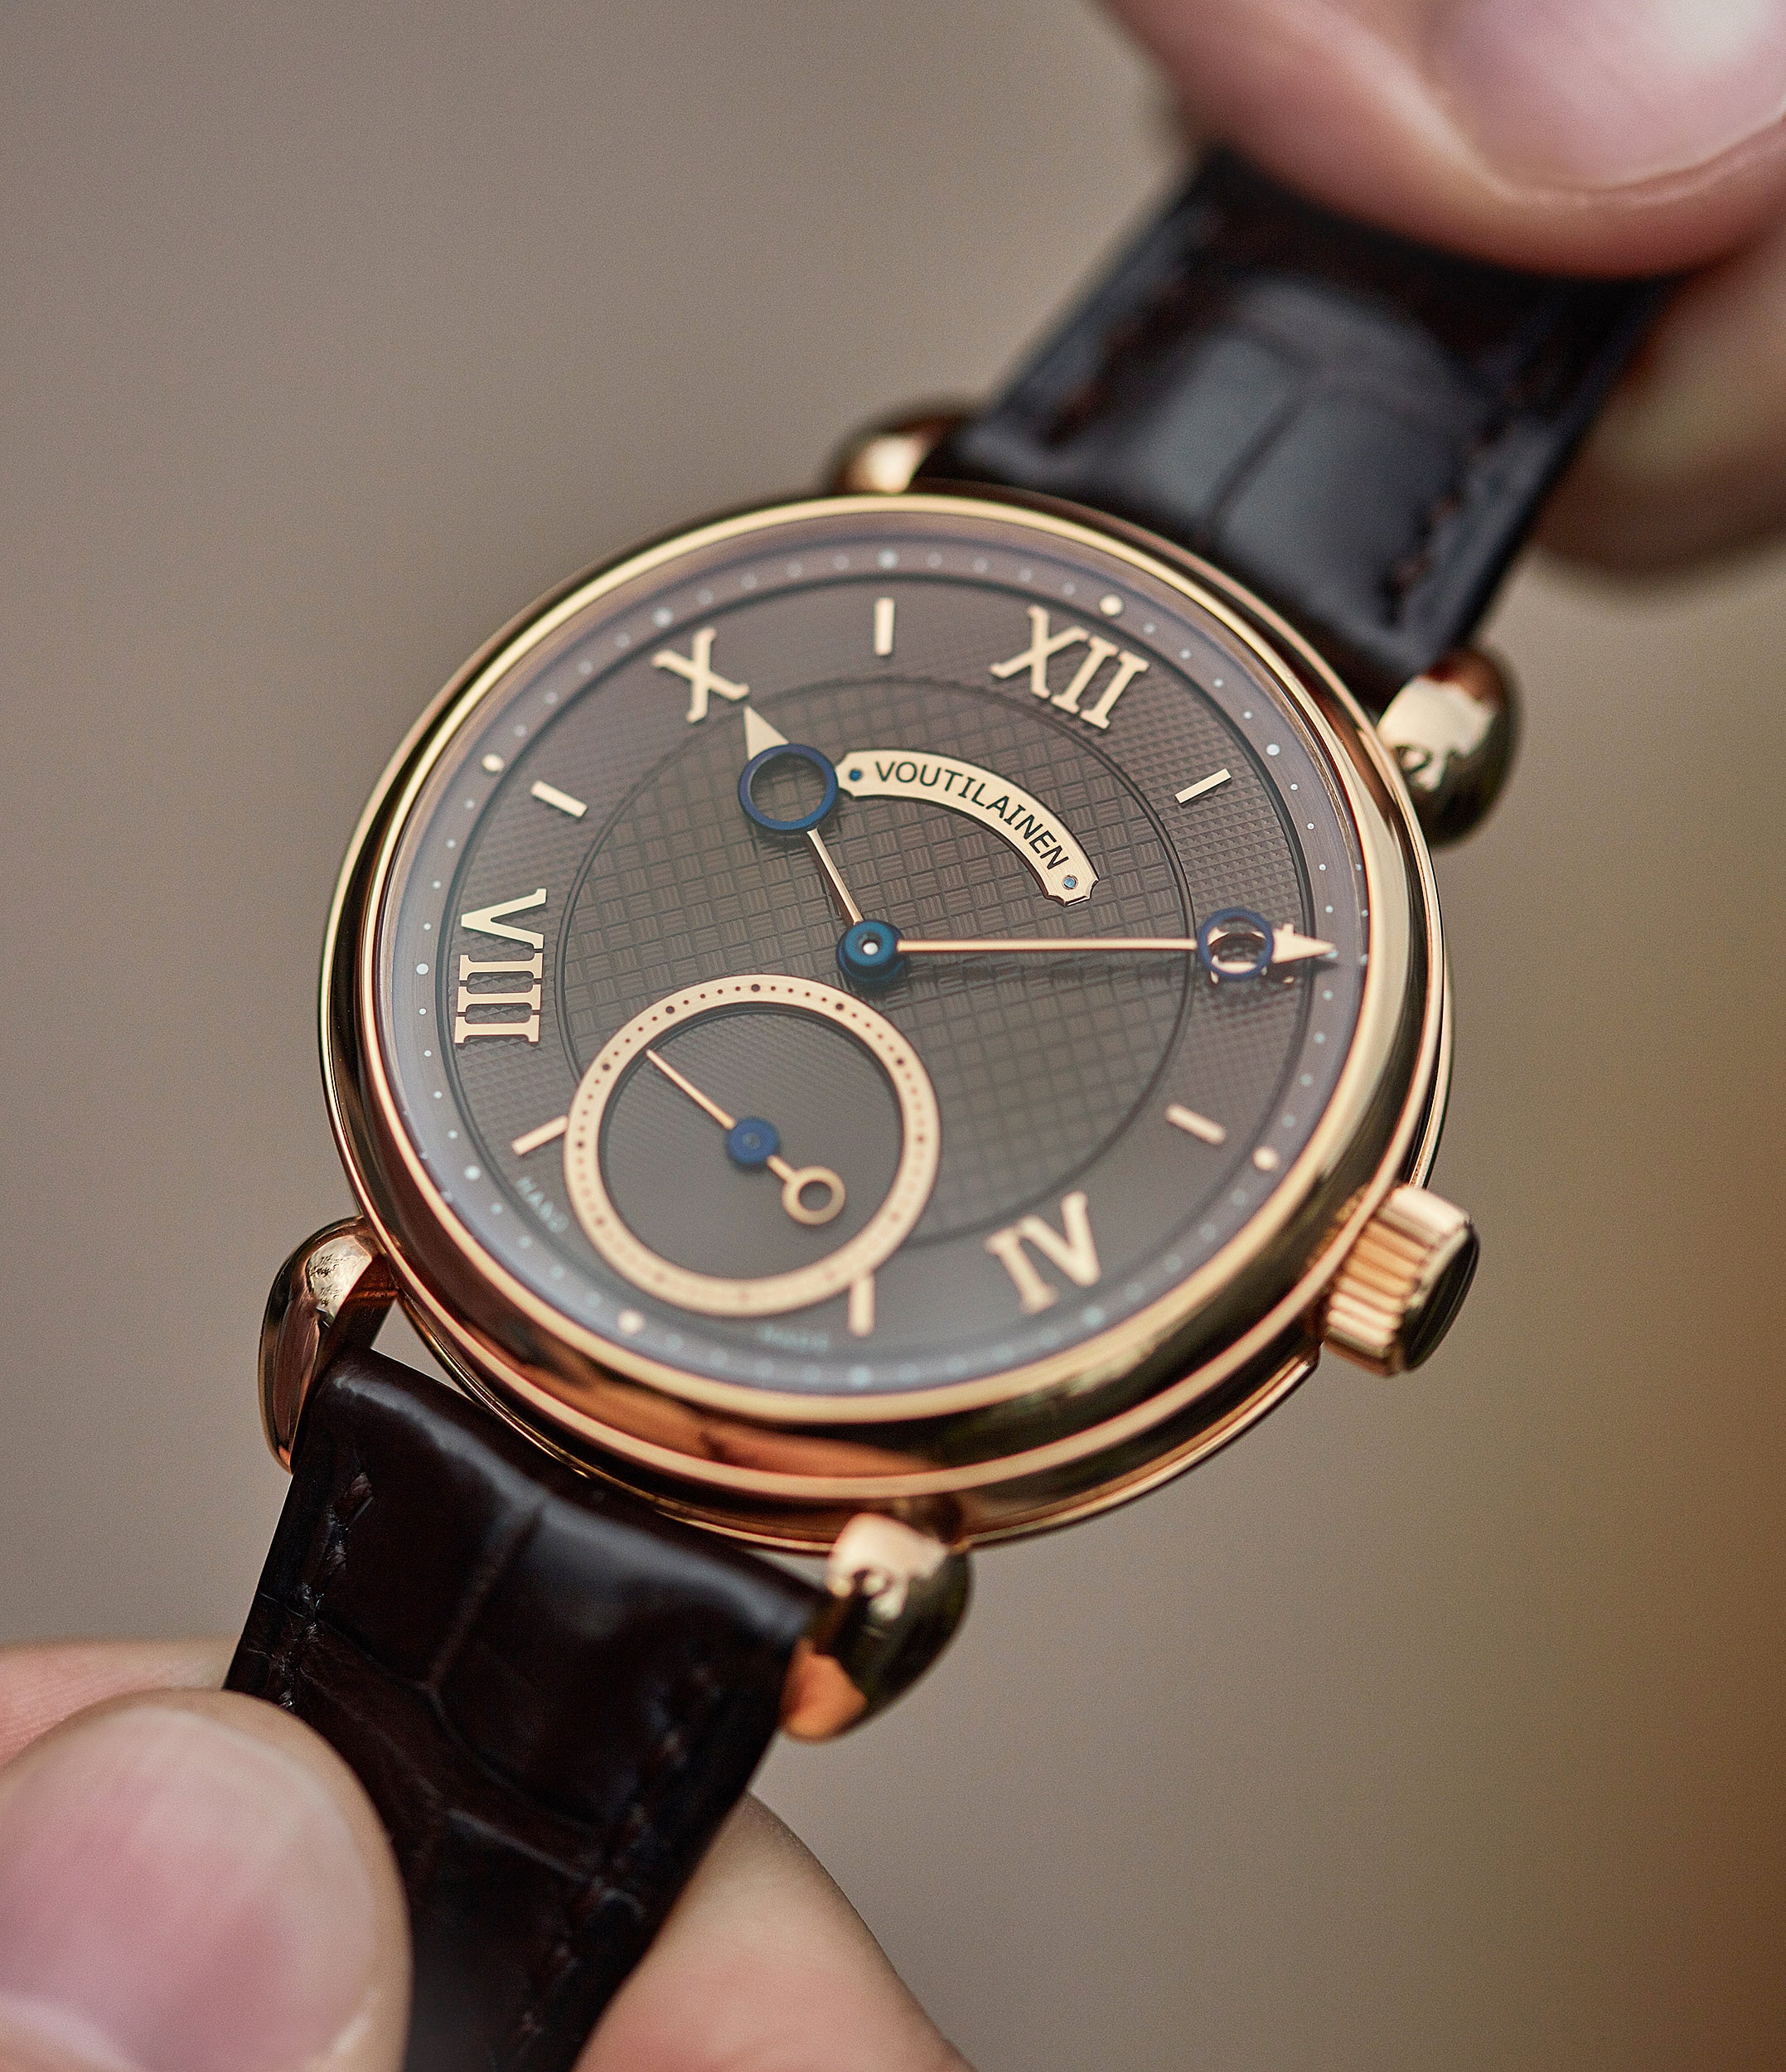 selling Kari Voutilainen Vingt-8 Cal. 28 rose gold dress watch with brown guilloche dial for sale at A Collected Man London approved re-seller of preowned Voutilainen watches